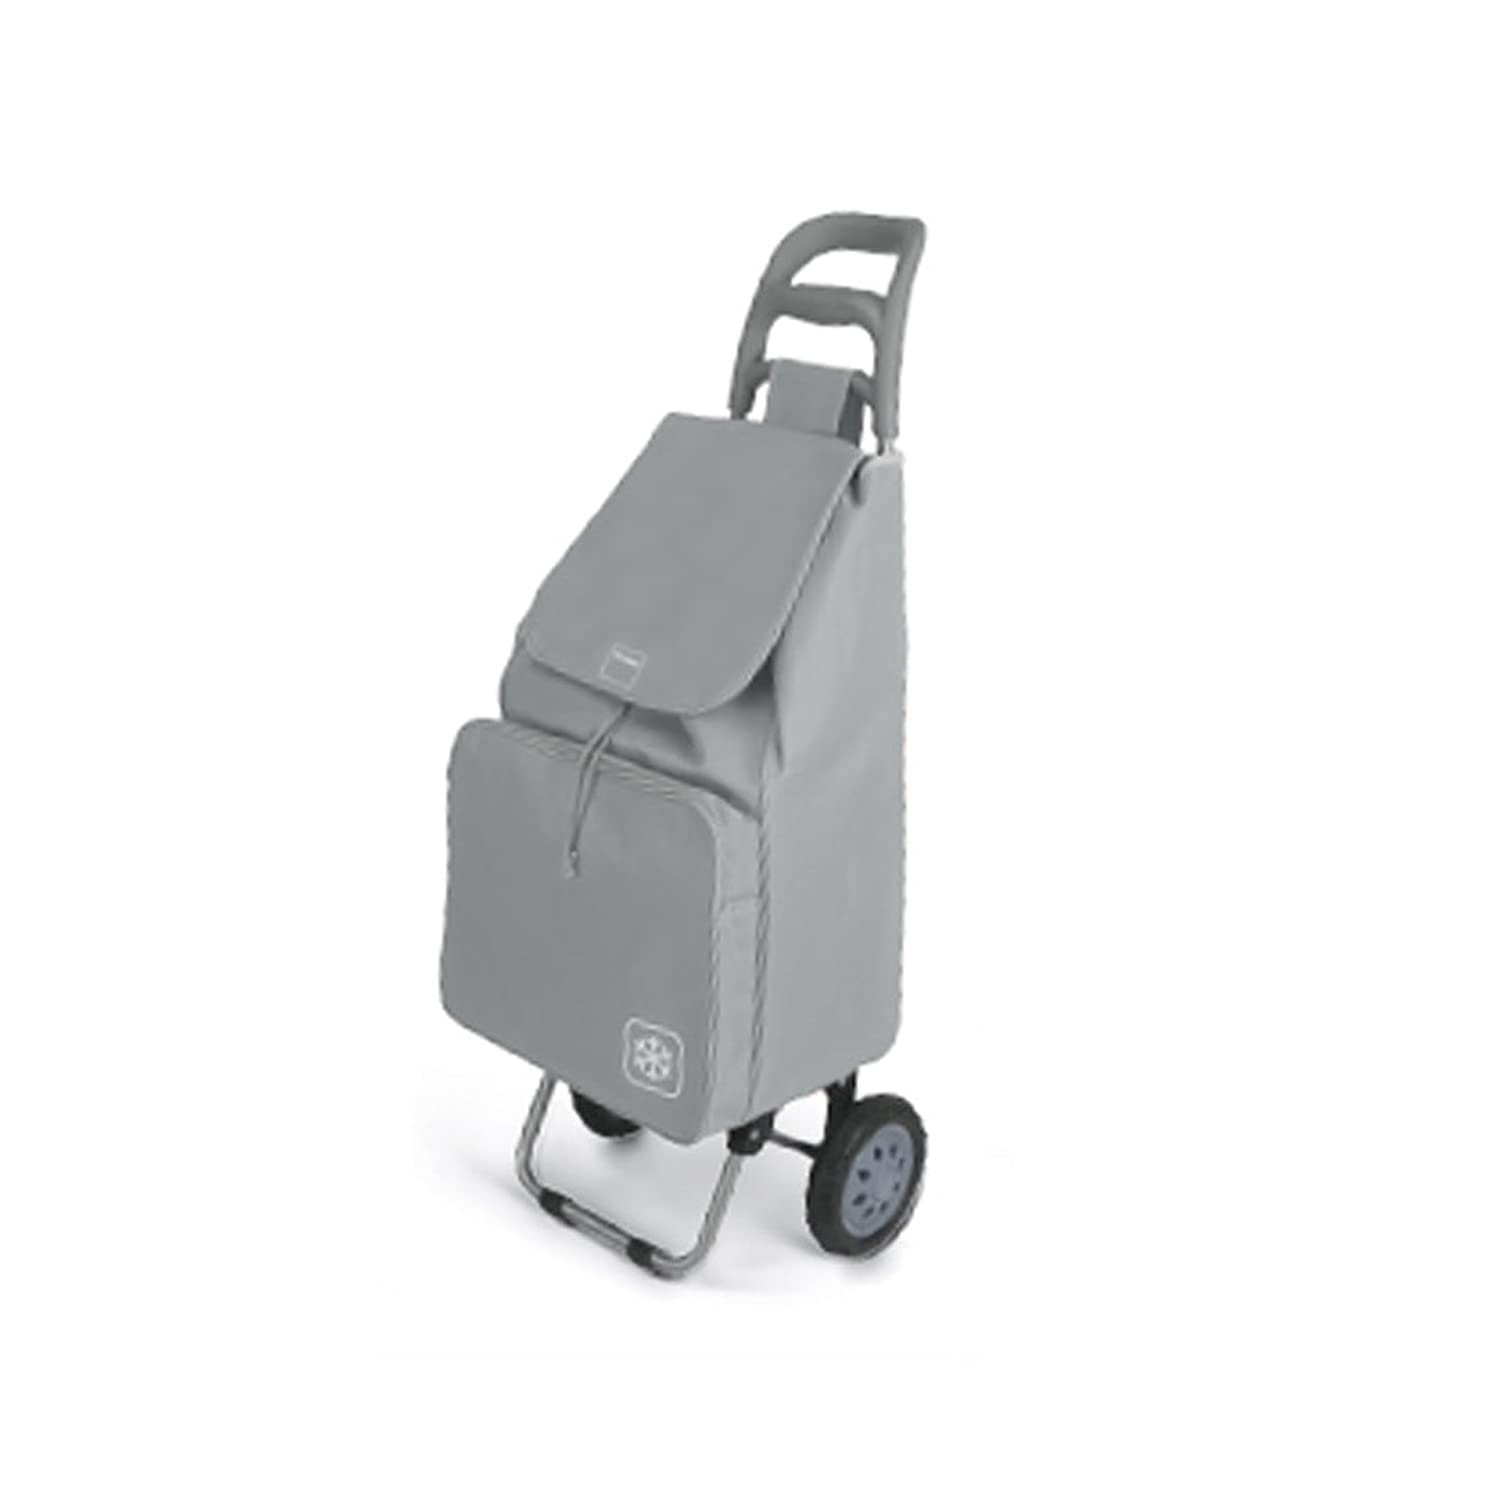 Metaltex 415280 Shopping Cart, Gray